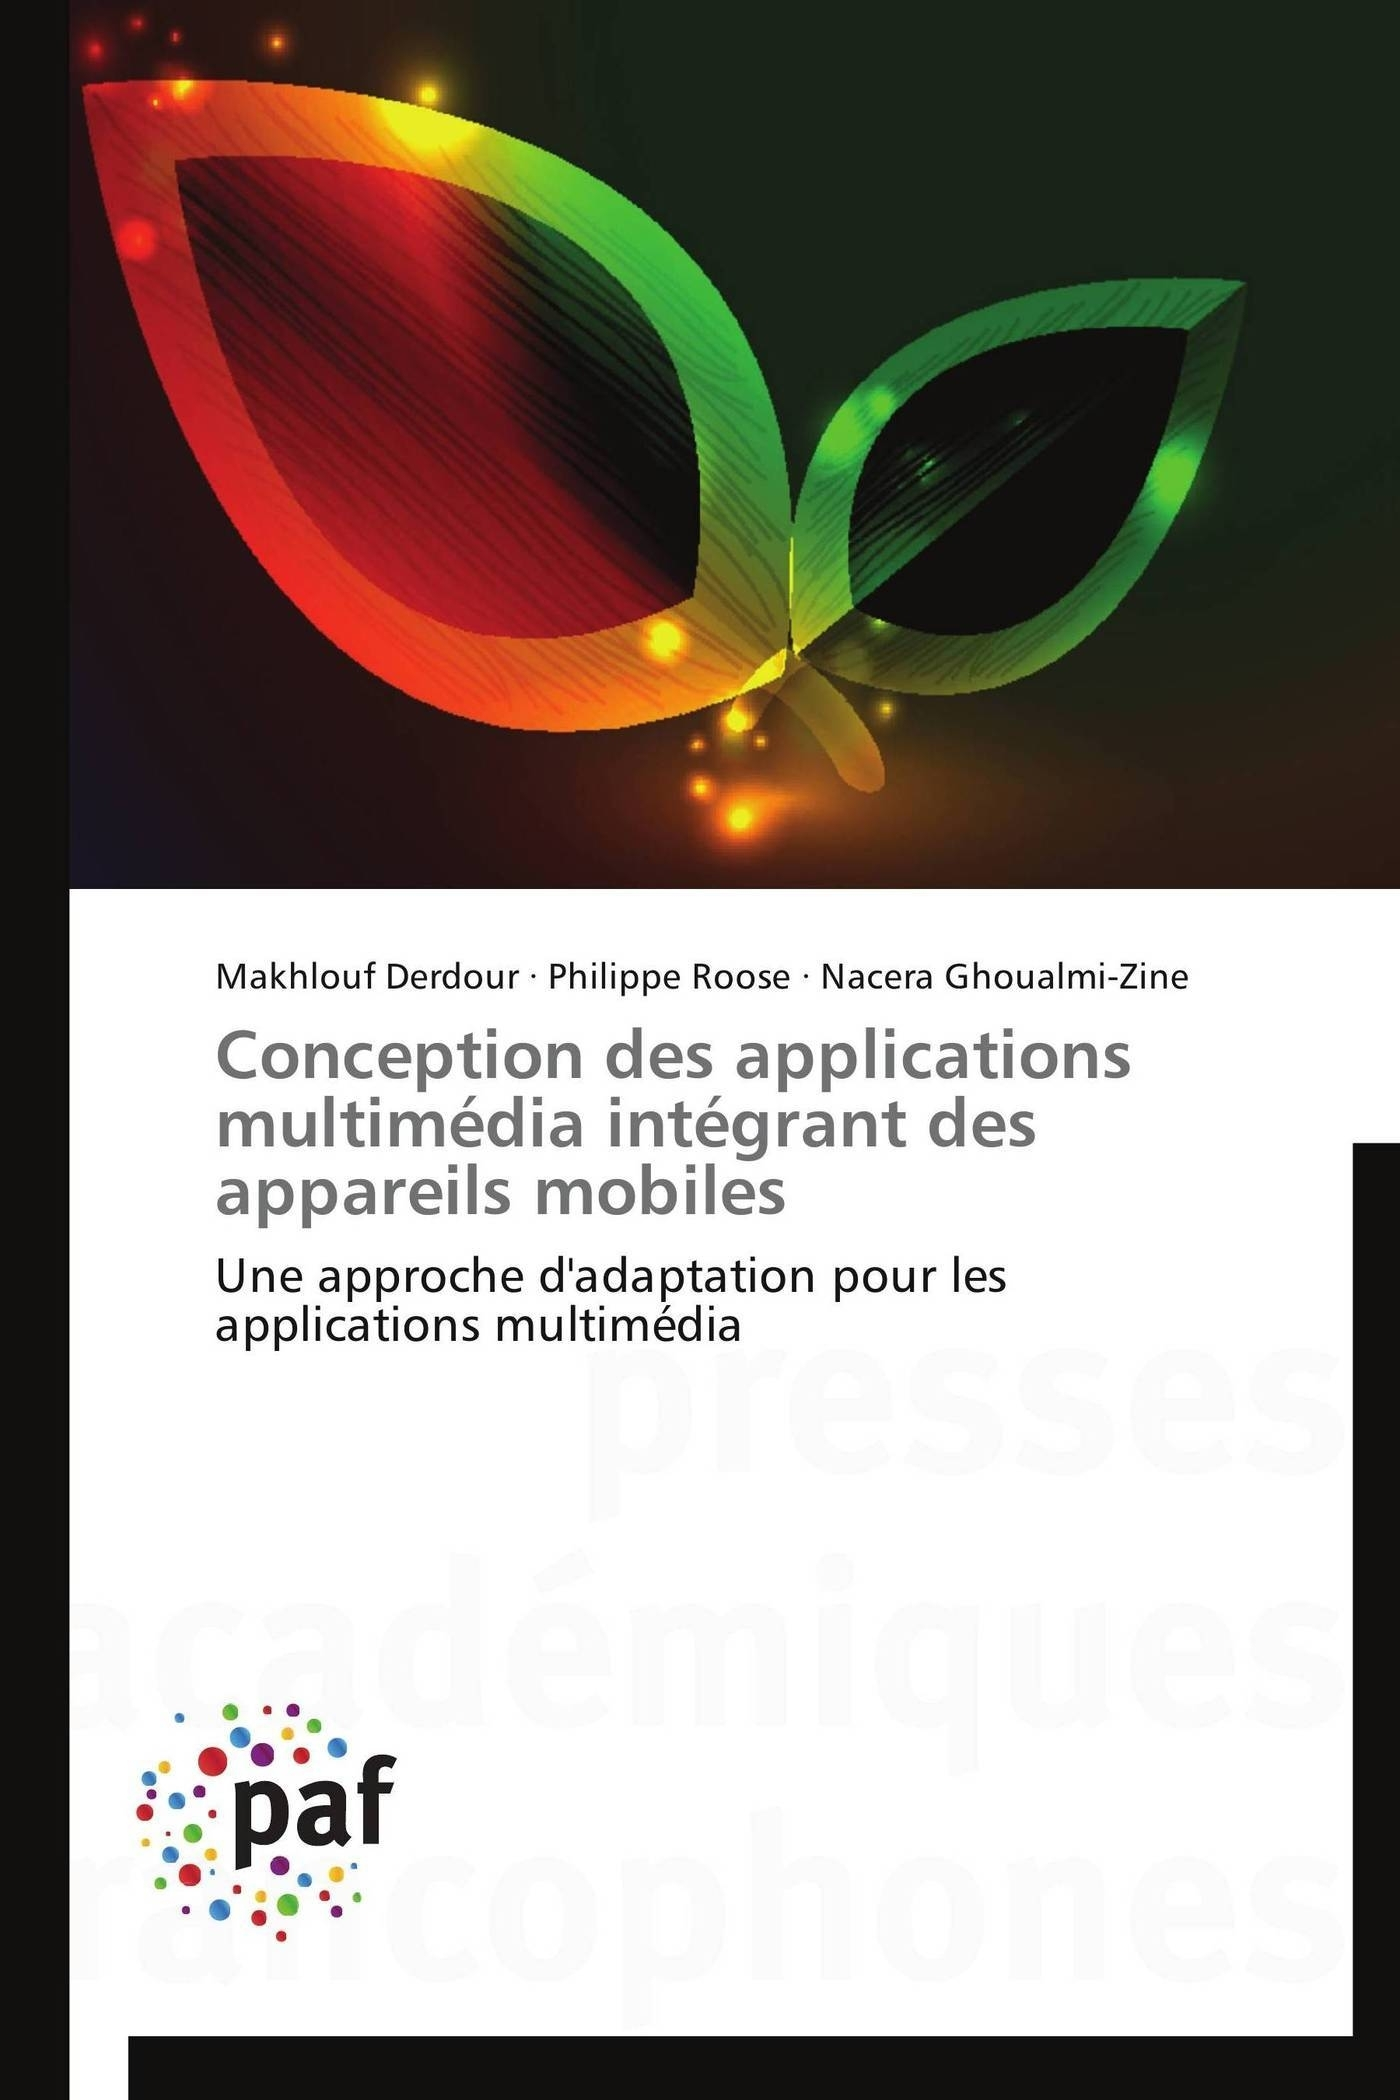 CONCEPTION DES APPLICATIONS MULTIMEDIA INTEGRANT DES APPAREILS MOBILES